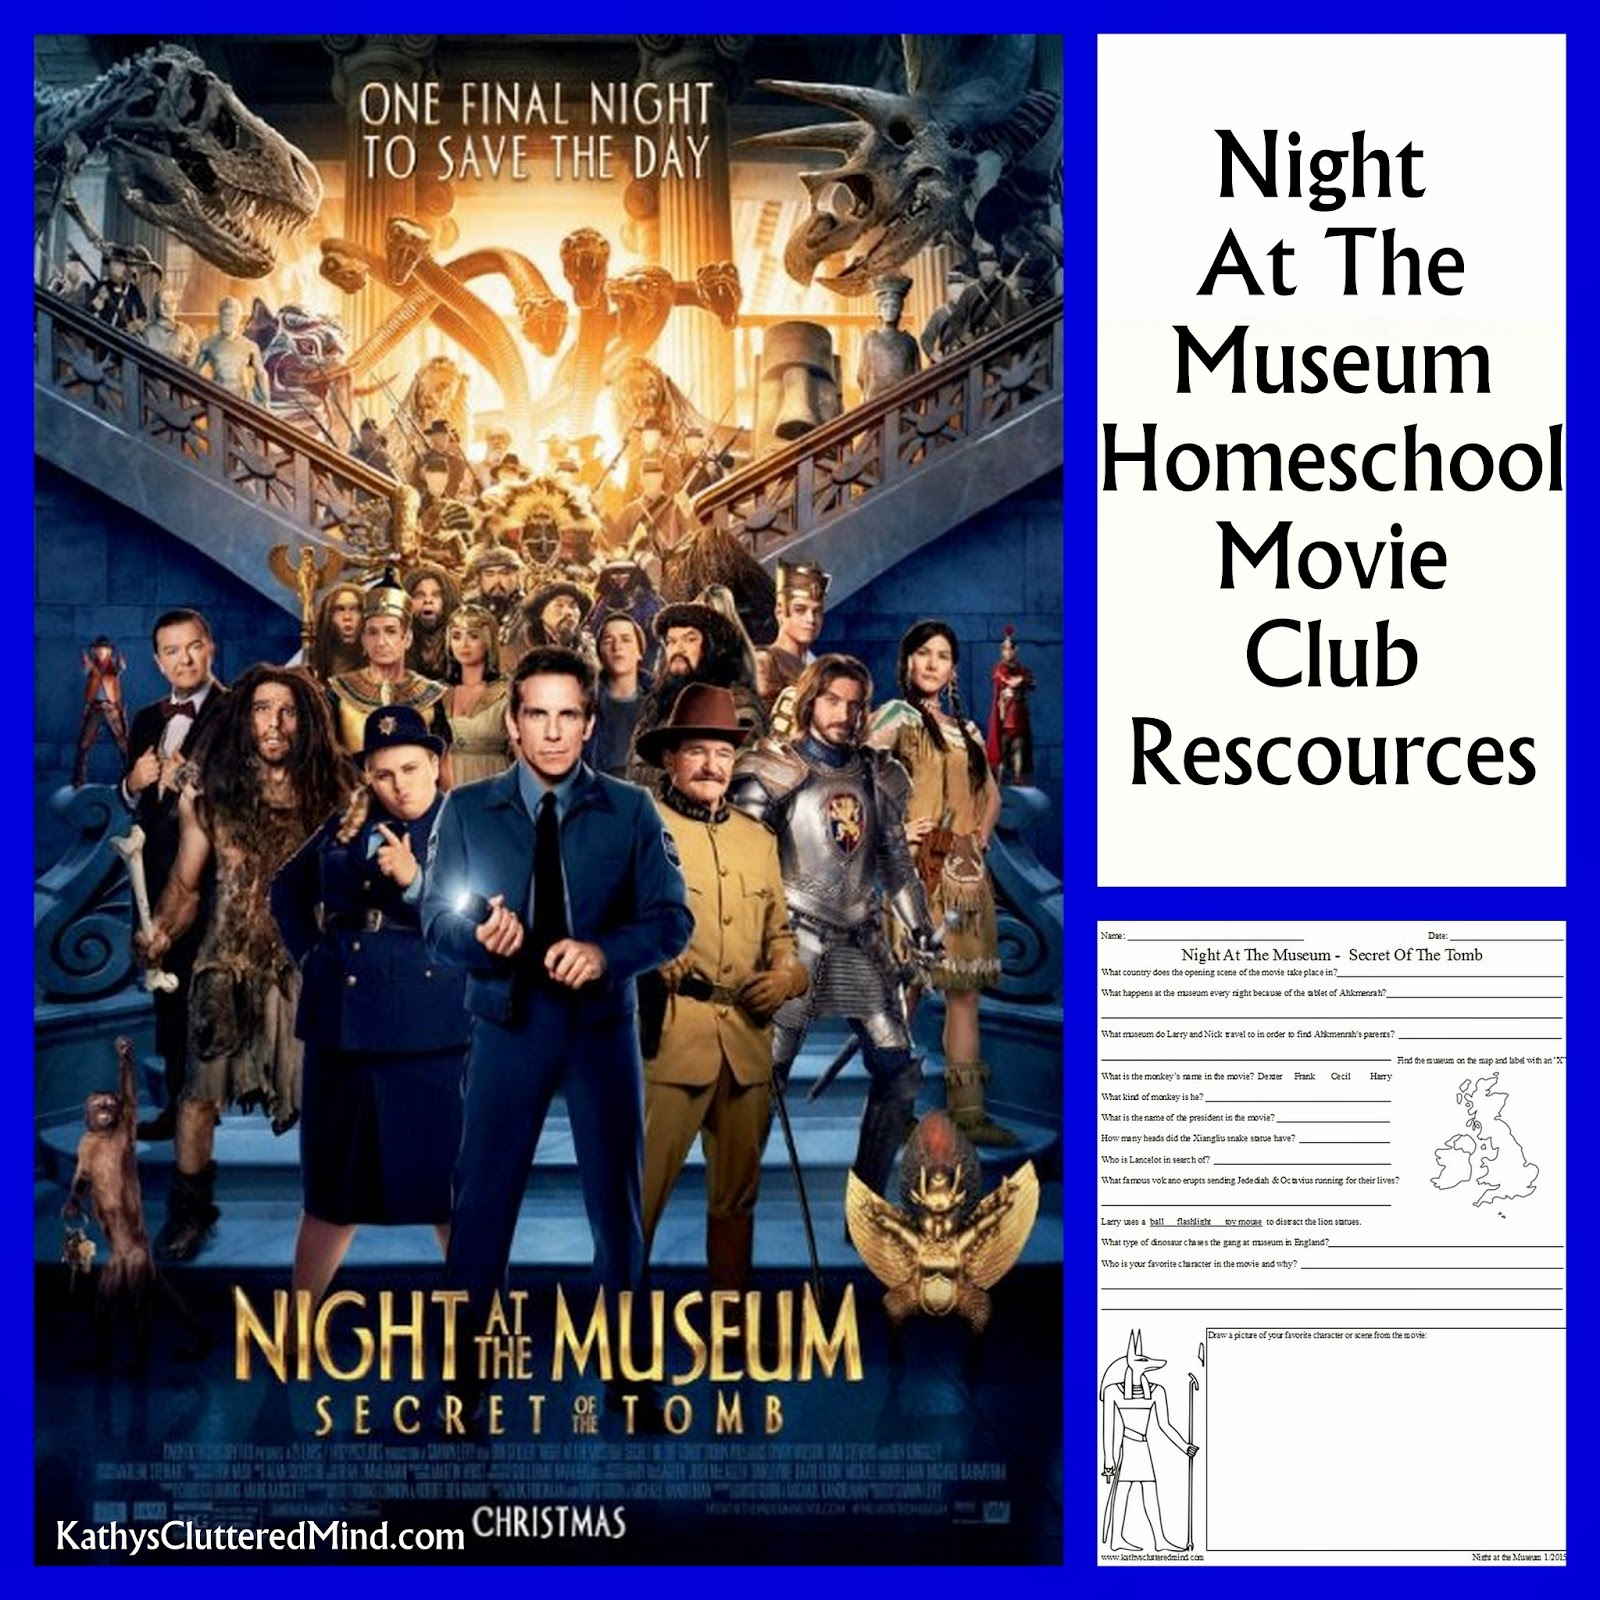 worksheet Night At The Museum Worksheets kathys cluttered mind night at the museum secret of tomb about a week ago we saw with our homeschool movie club yes i totally created homeschool